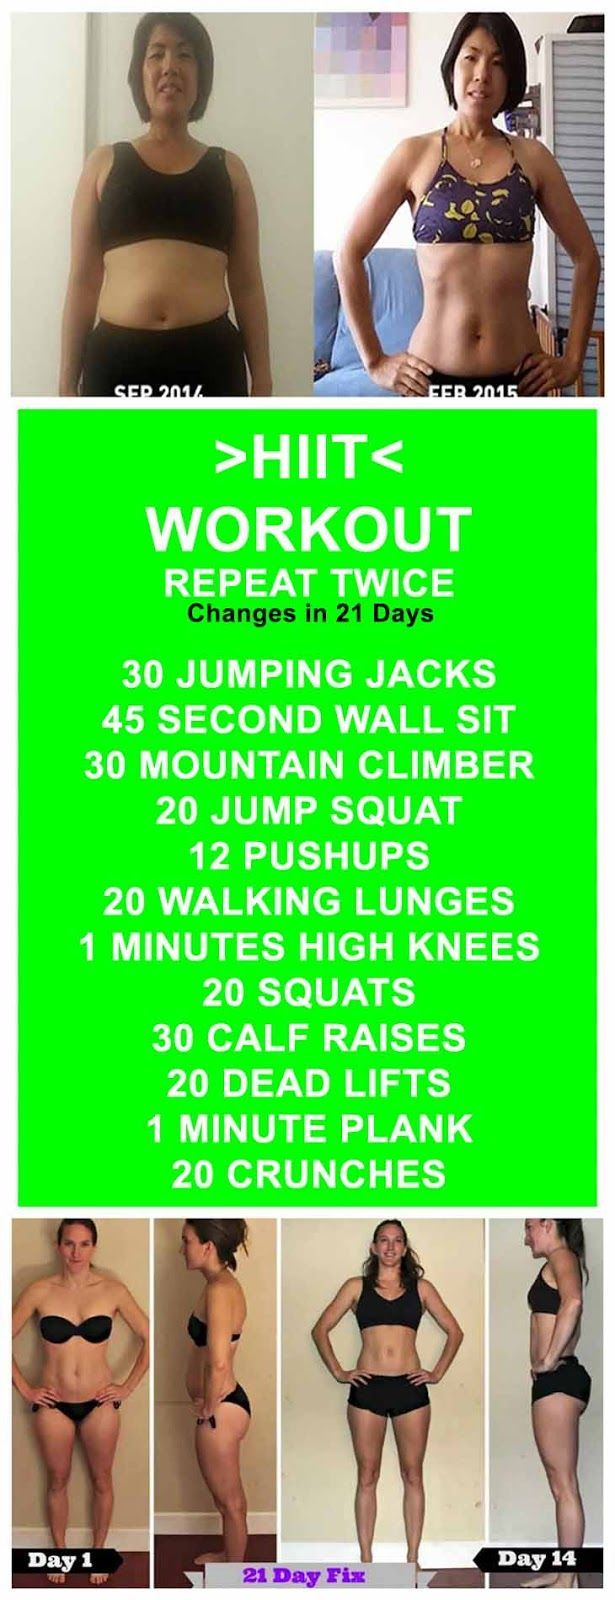 HIIT WORKOUT and discover Rapid Fat Loss Tips That Promise Visible Results | 21 days | workout | fitness | fat loss | motivation | challenge | workout plan | #cardiomenfatburning